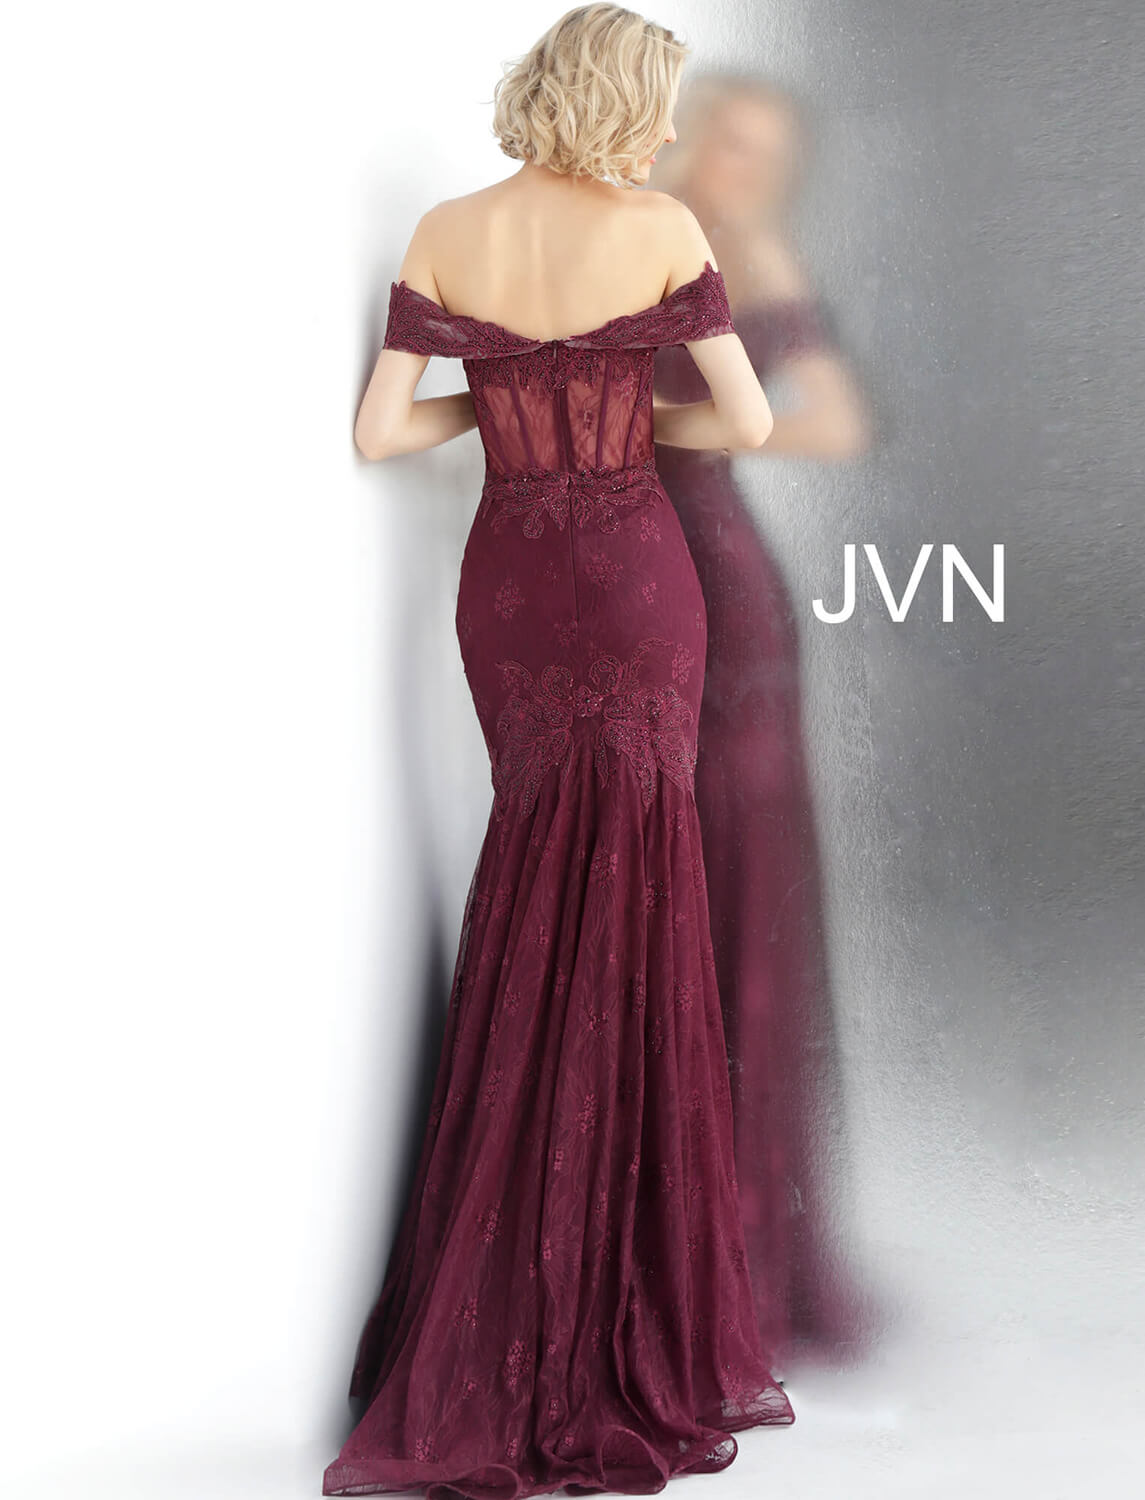 d0db3e2f0ac6 Bordeaux Embroidered Off-the-Shoulder Sweetheart Corset Prom Dress